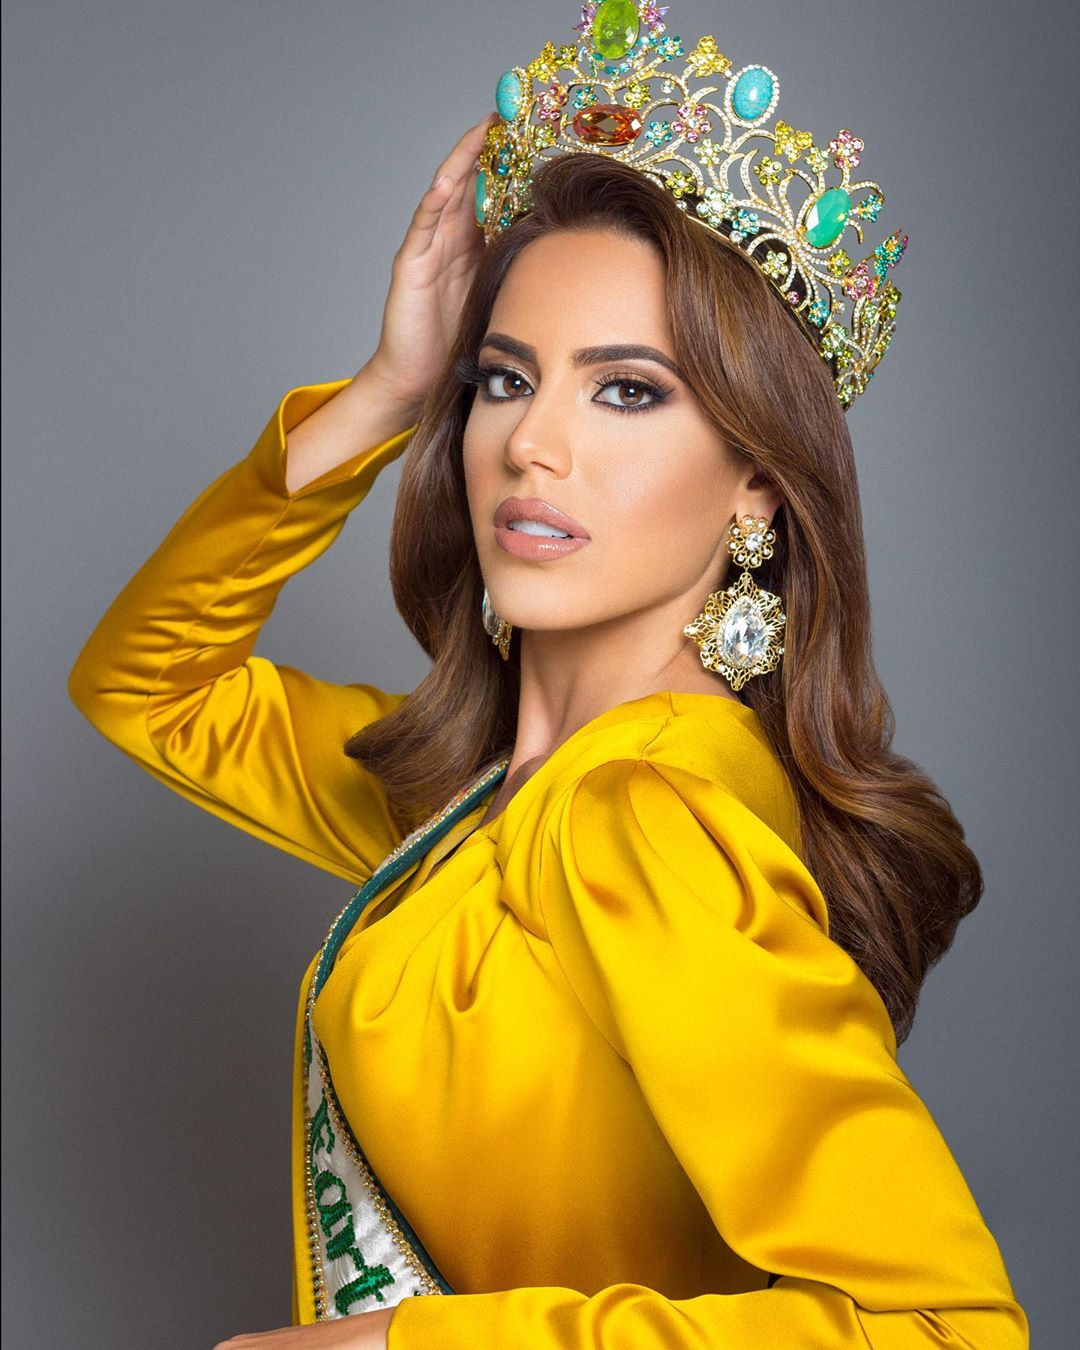 sonia hernandez, top 20 de miss earth 2019. 70244710